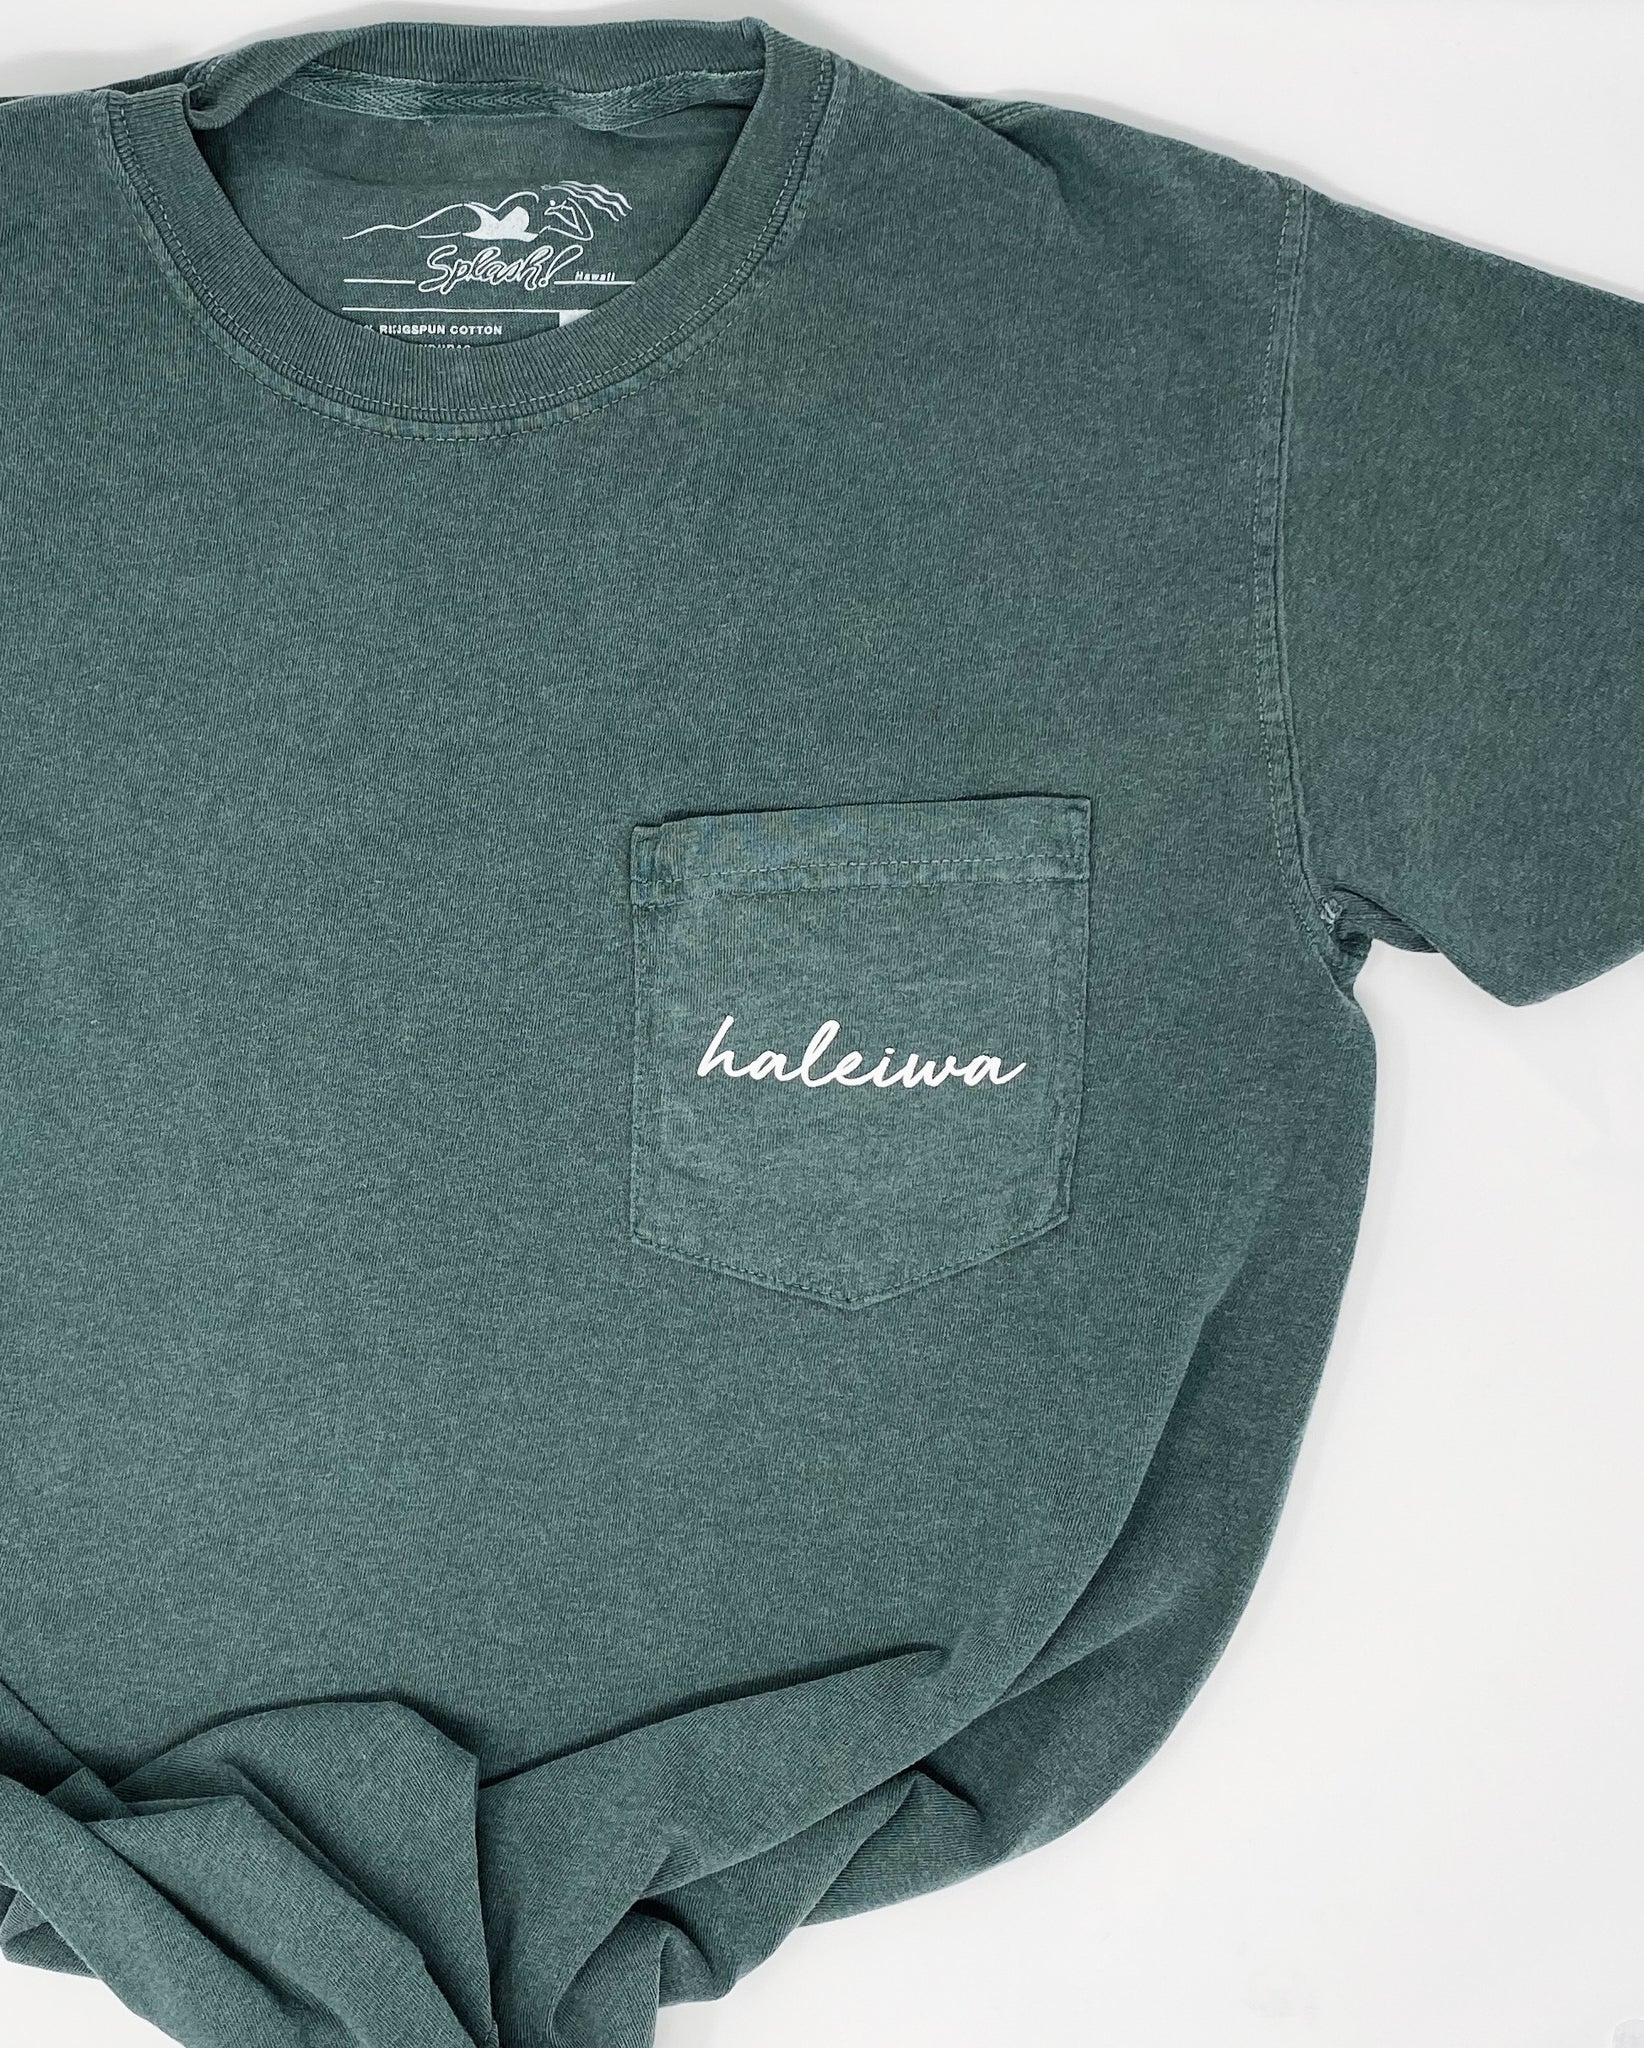 Haleiwa Pocket Tee in Blue Spruce